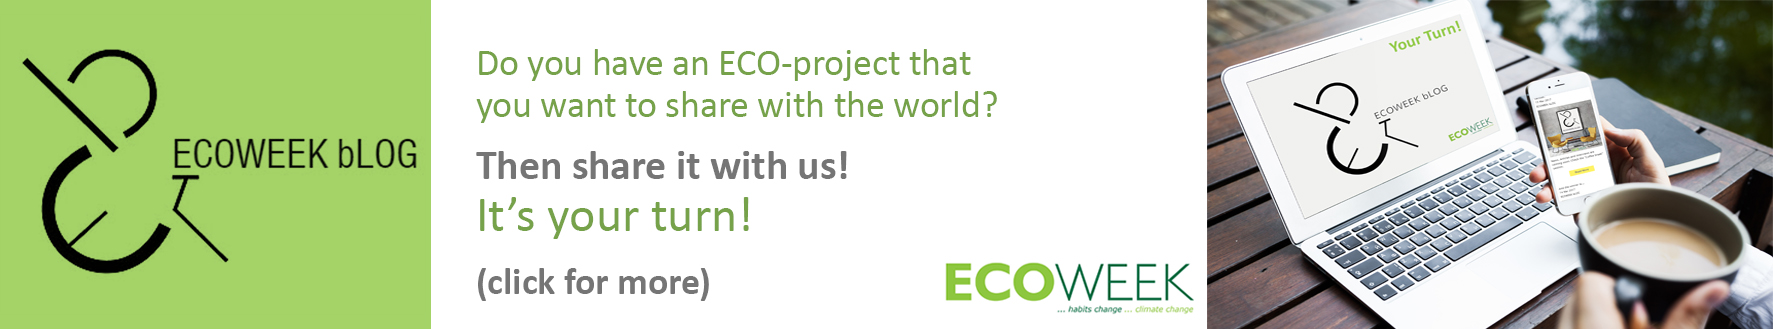 ECO-week project